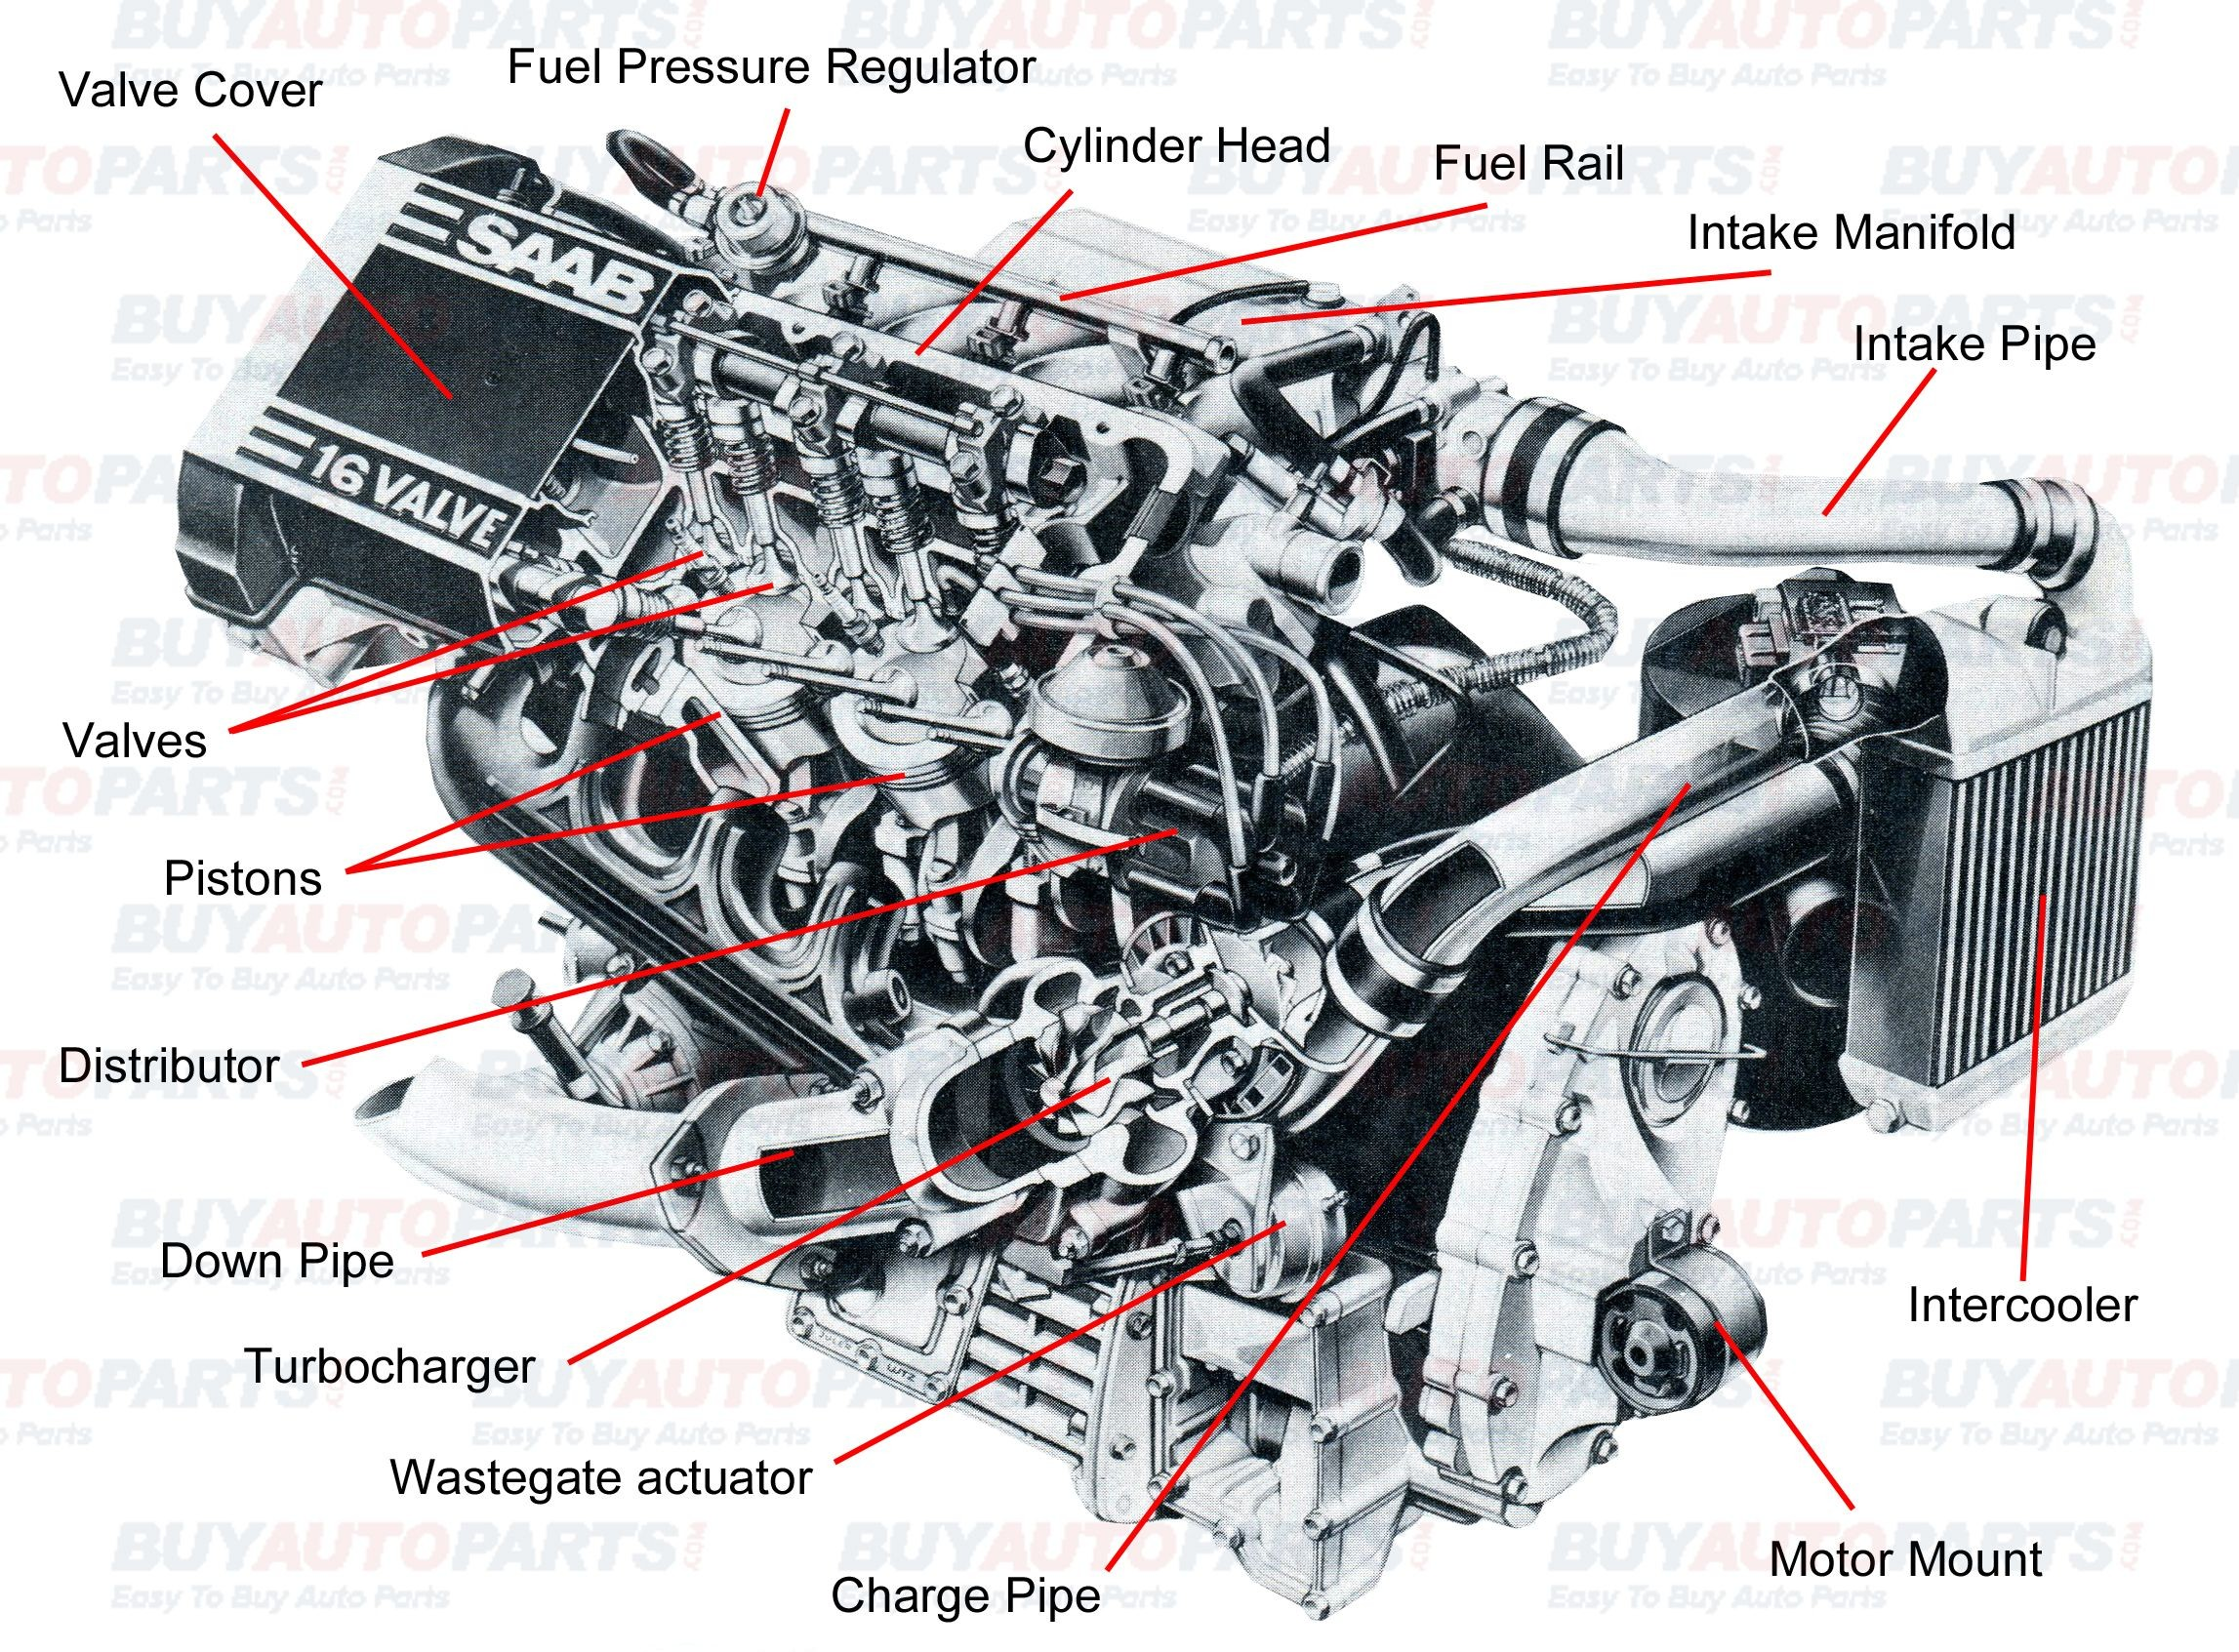 Ford Car Part Diagrams Pin by Jimmiejanet Testellamwfz On What Does An Engine with Of Ford Car Part Diagrams